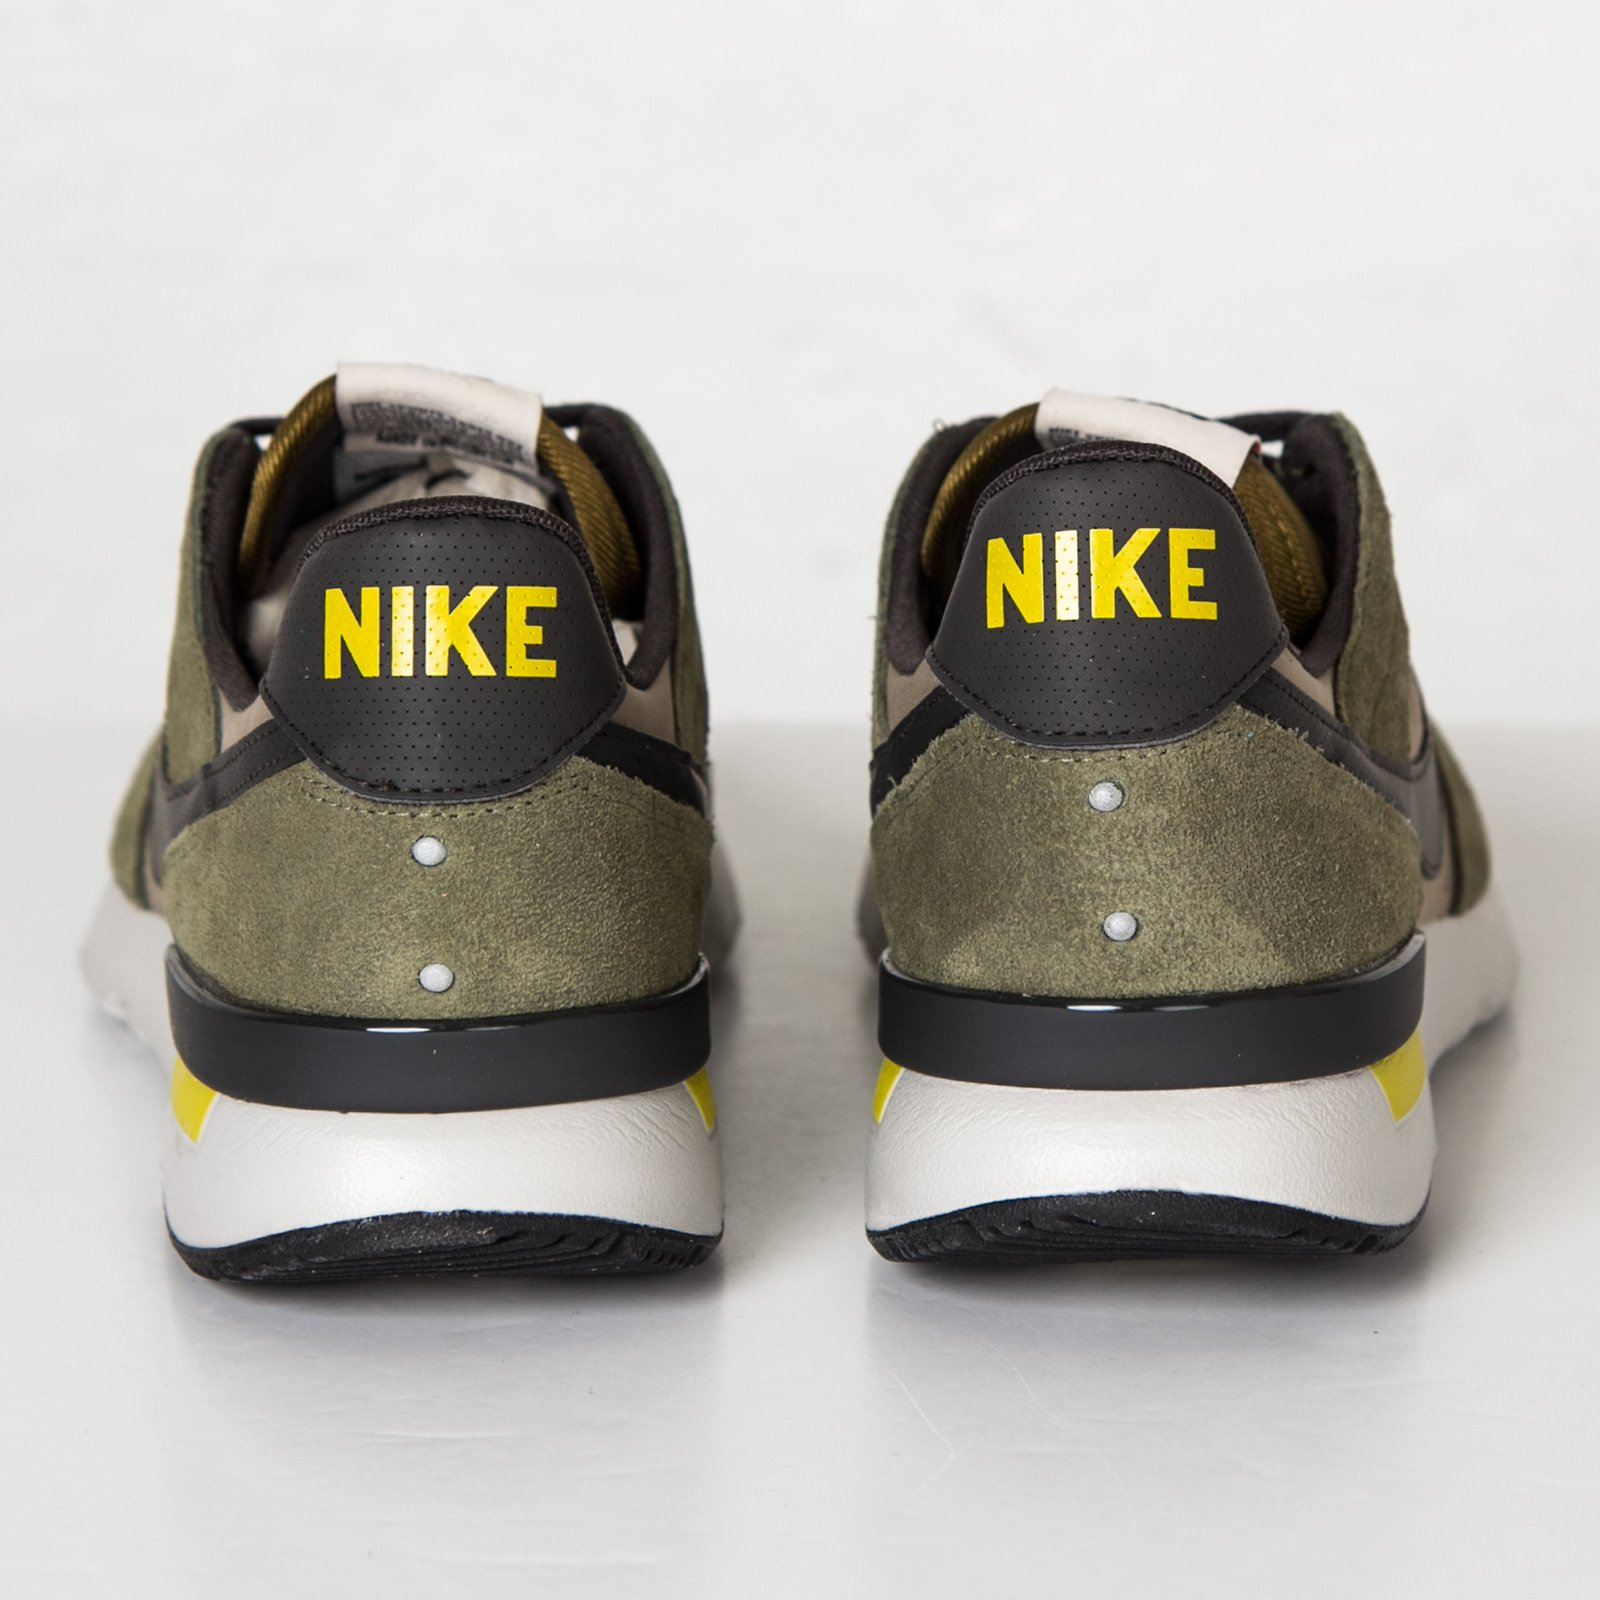 614ab017e8 sweden nike archive 83 m medium olive deep pewter soldes novoid plus 66cdf  1cc8e; reduced nike archive Â83 m 1bf2f 6f17e